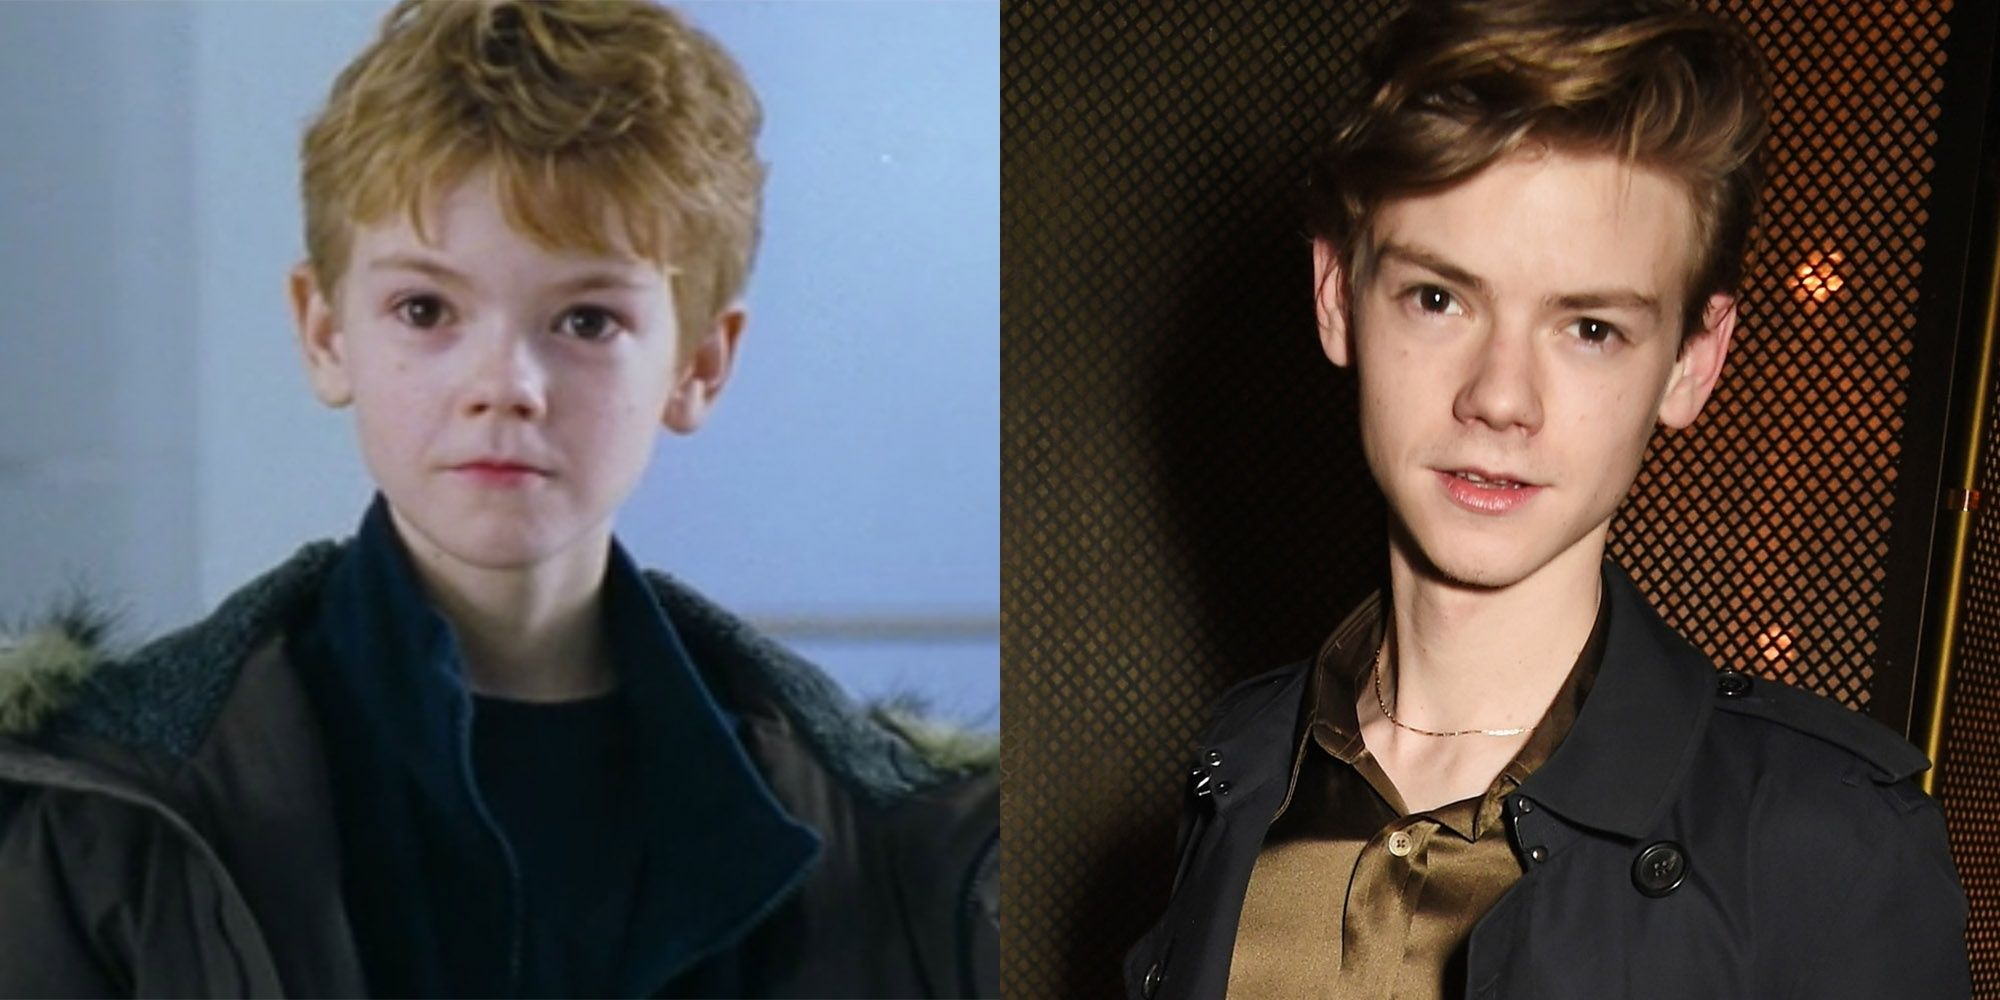 See What The Love Actually Cast Looks Like Now Thomas Sangster Thomas Brodie Sangster Thomas Brodie